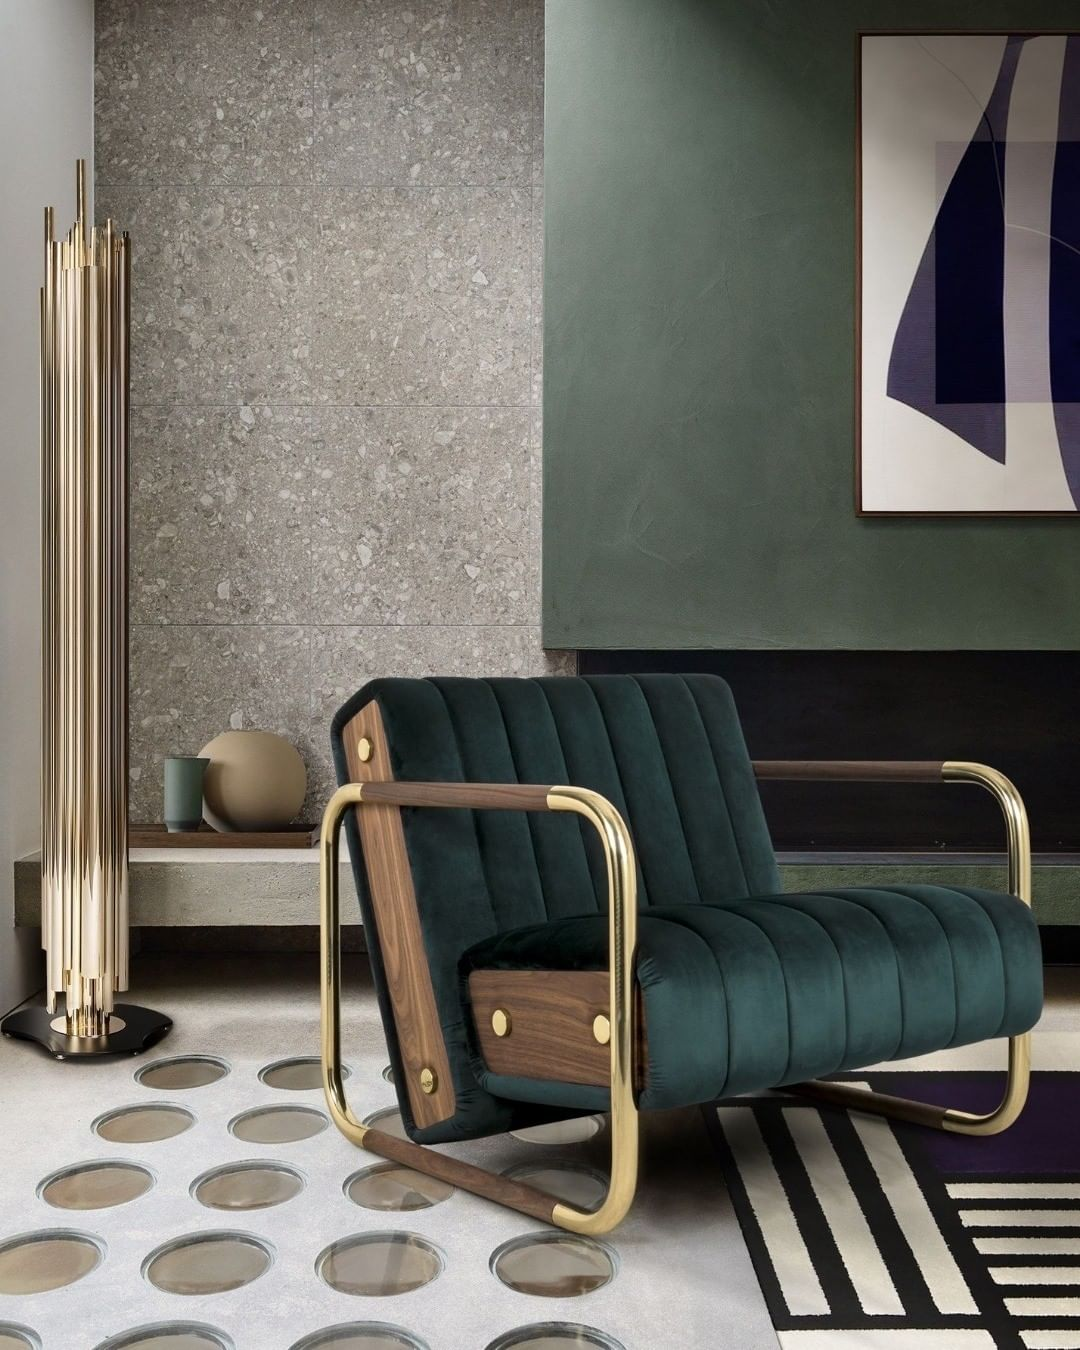 LUXURIOUS INSPIRATION FOR SMALL SPACES